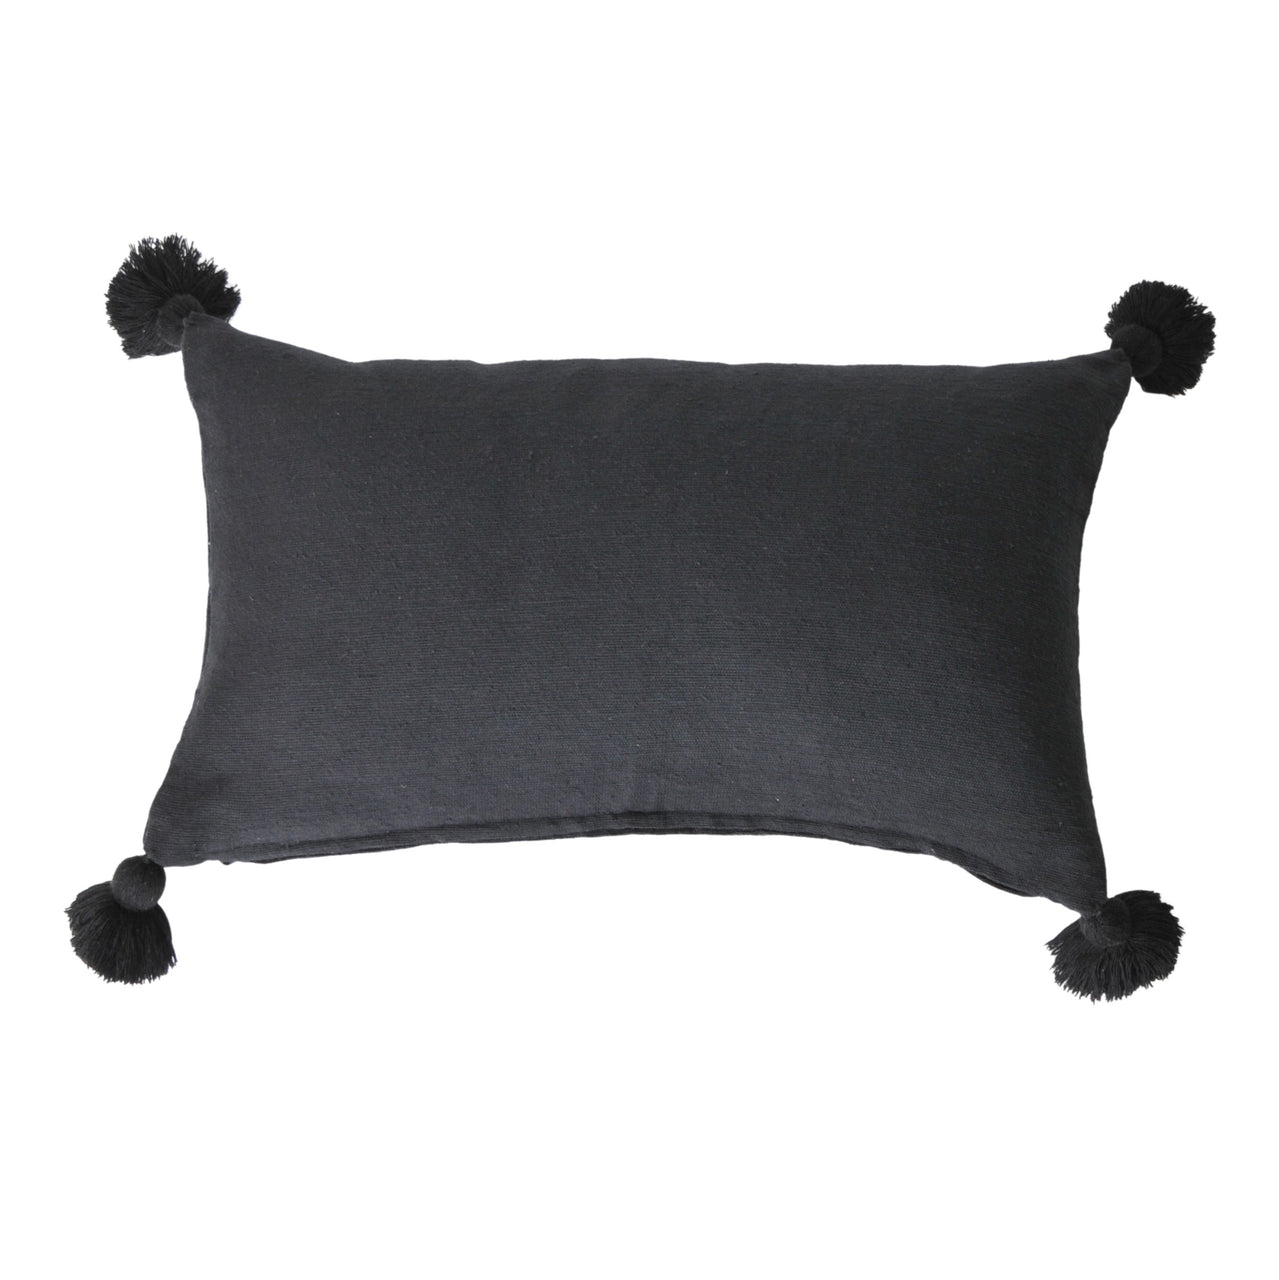 Soho Tassel Lumbar Cushion- Black